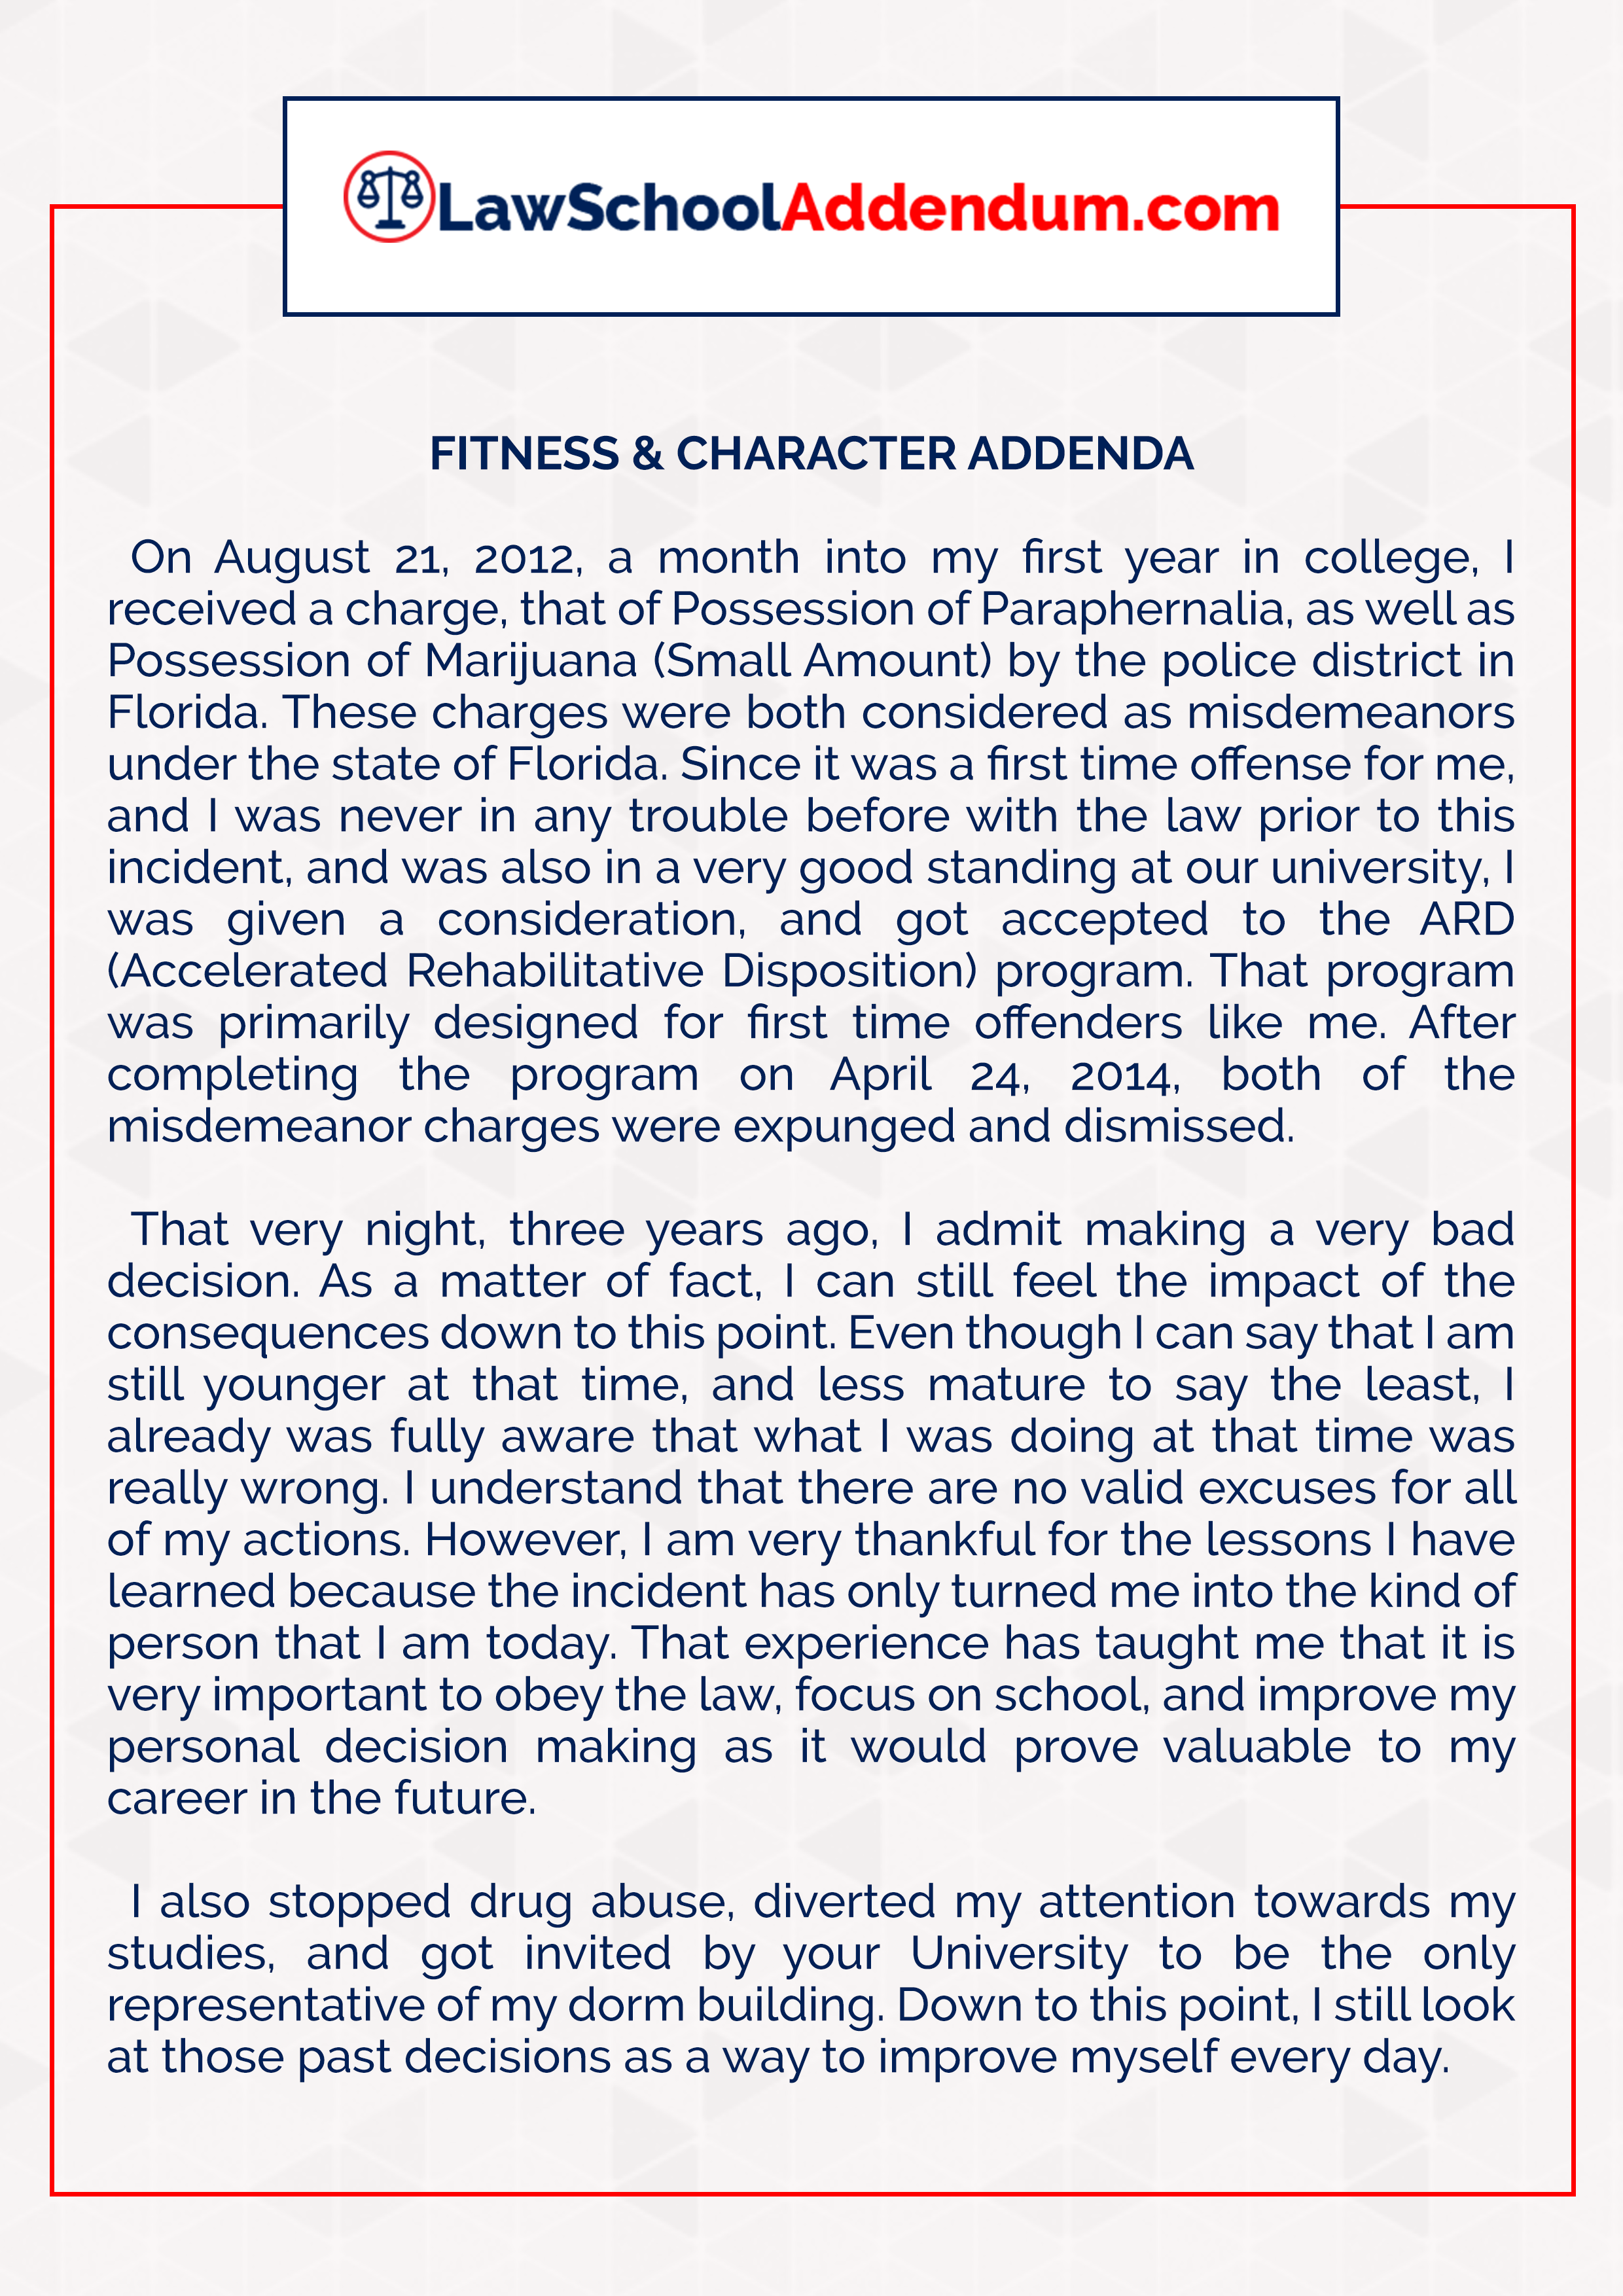 sample addendum essay Disclaimer: this essay has been submitted by a student this is not an example of the work written by our professional essay writers you can view samples of our professional work here any opinions, findings, conclusions or recommendations expressed in this material are those of the authors and do .